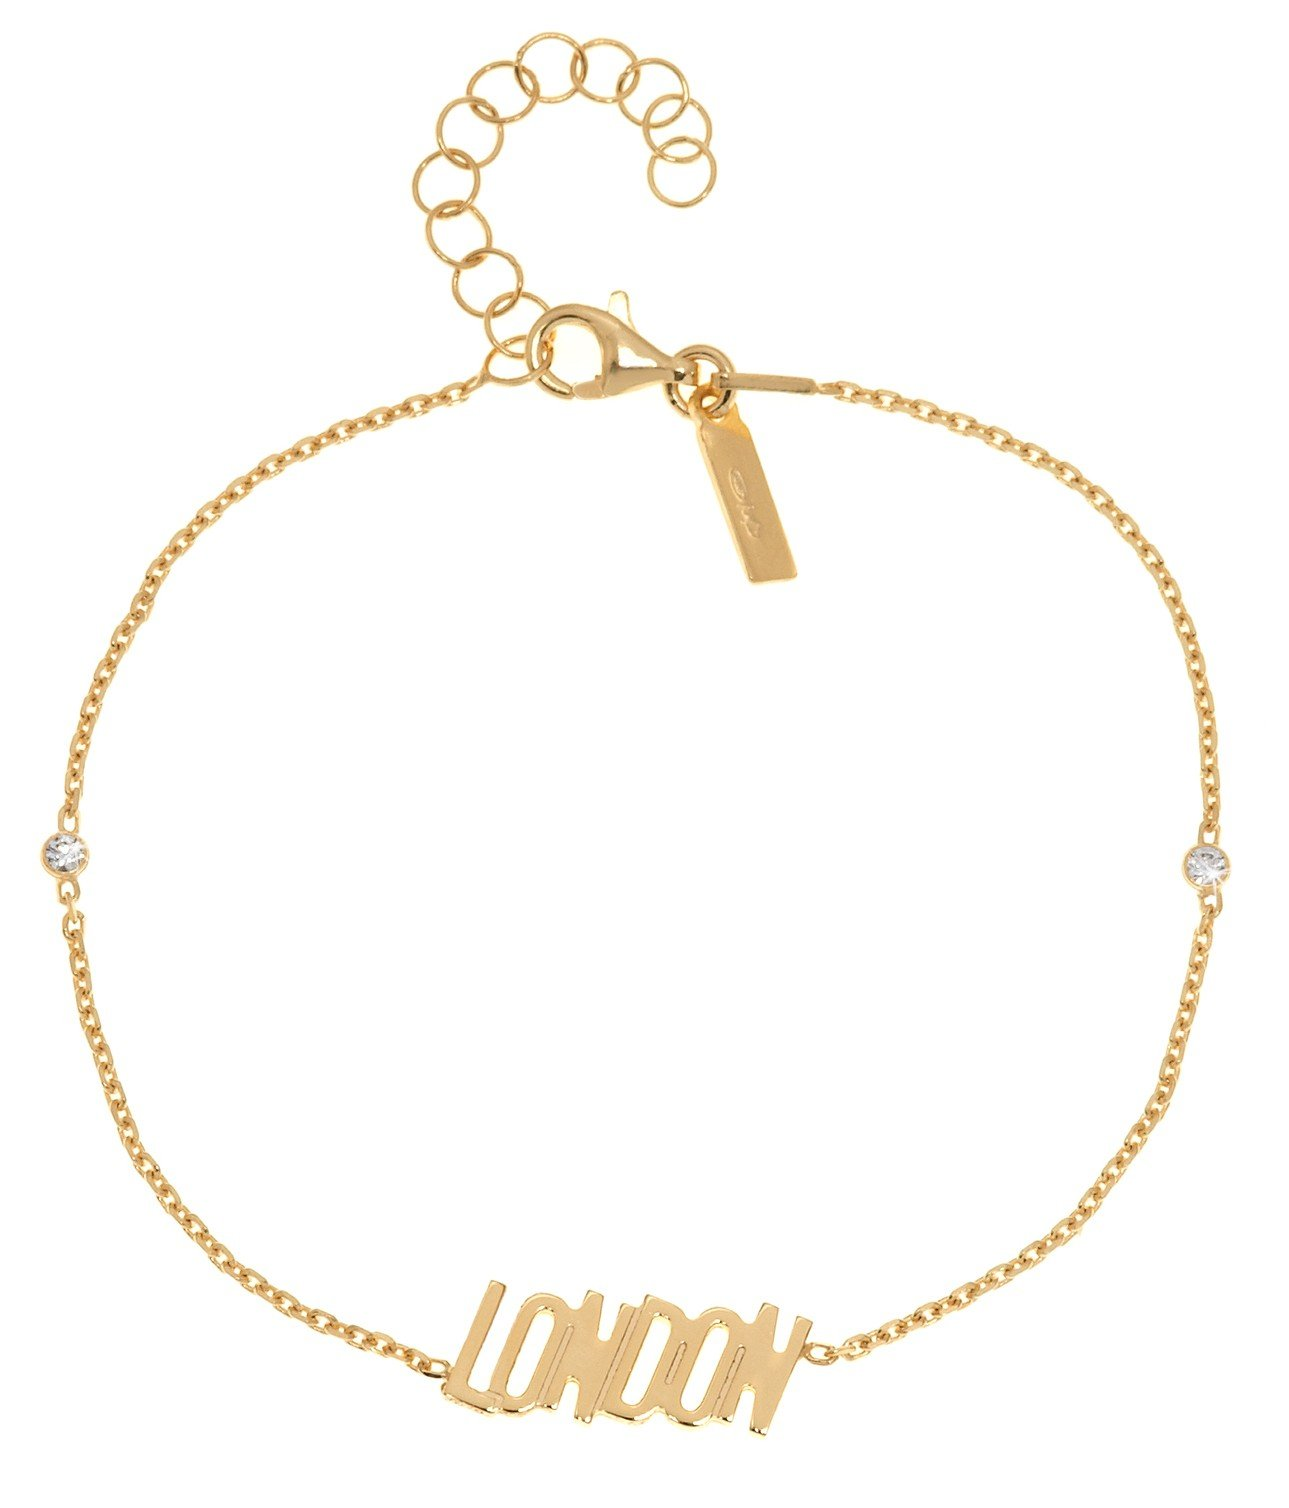 Maria Francesca Pepe London Bracelet